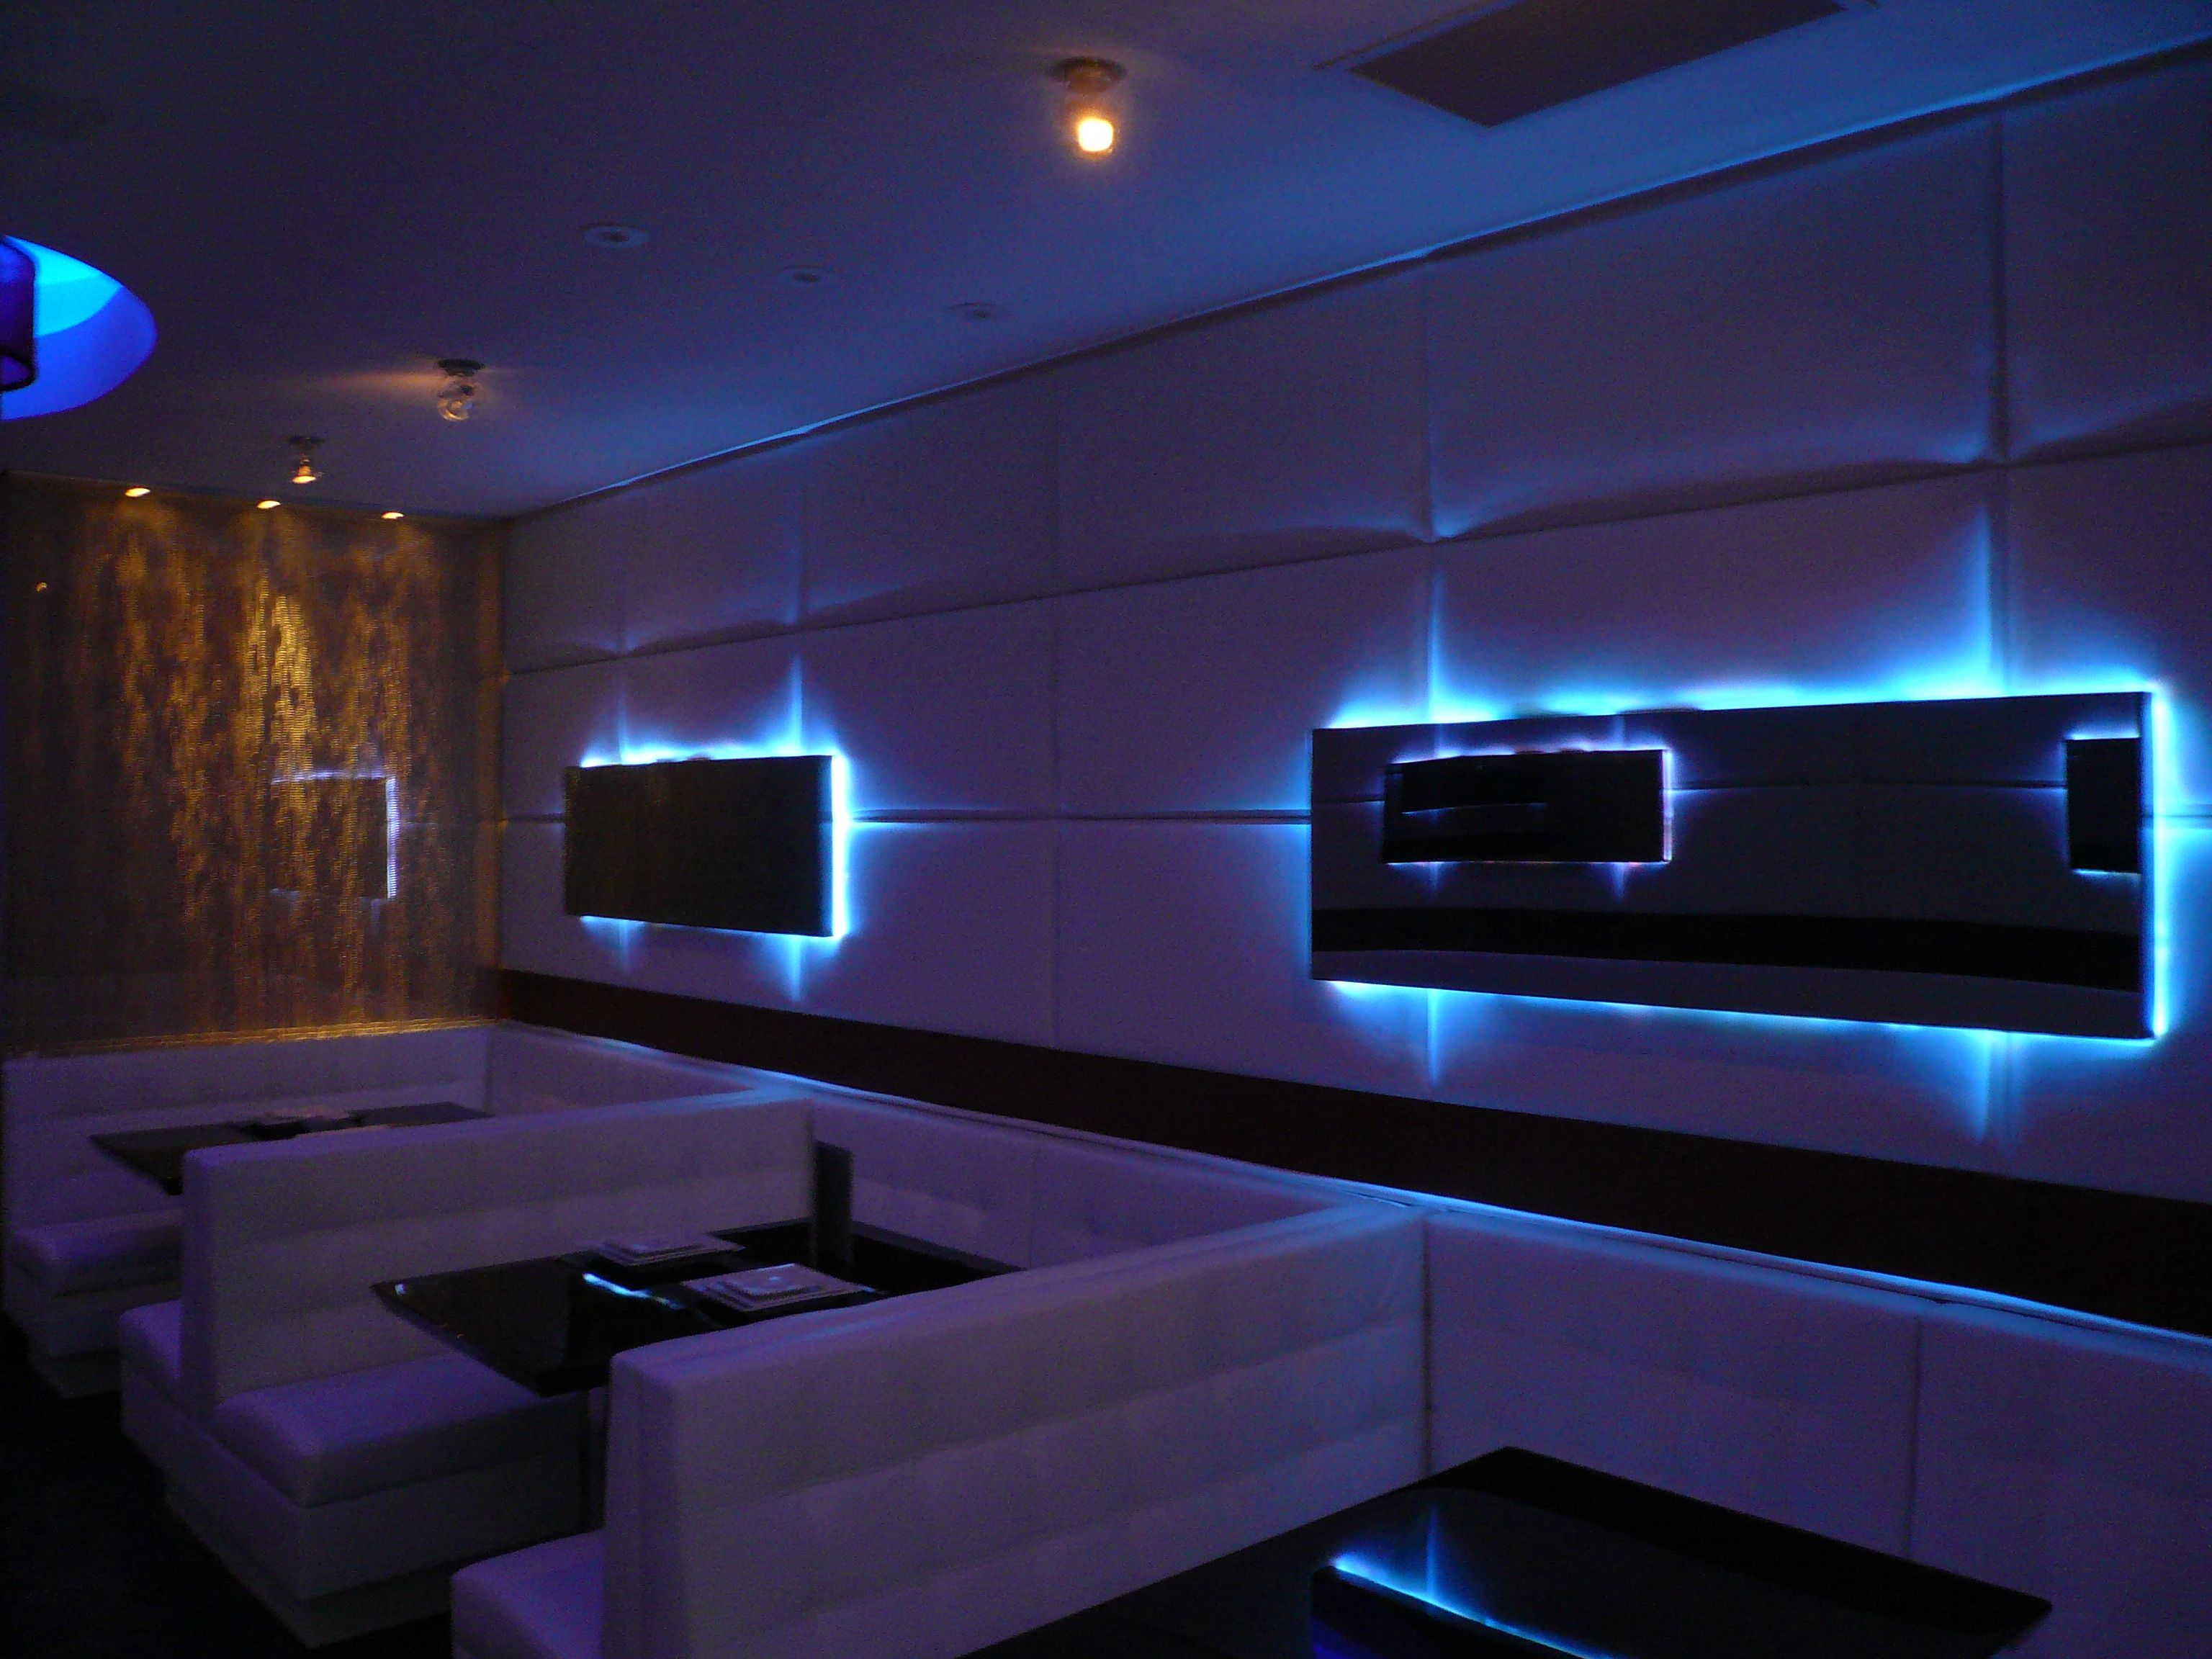 Lounge - Lounge Interior by untitledesigns - SHB-Esquire Lounge ...